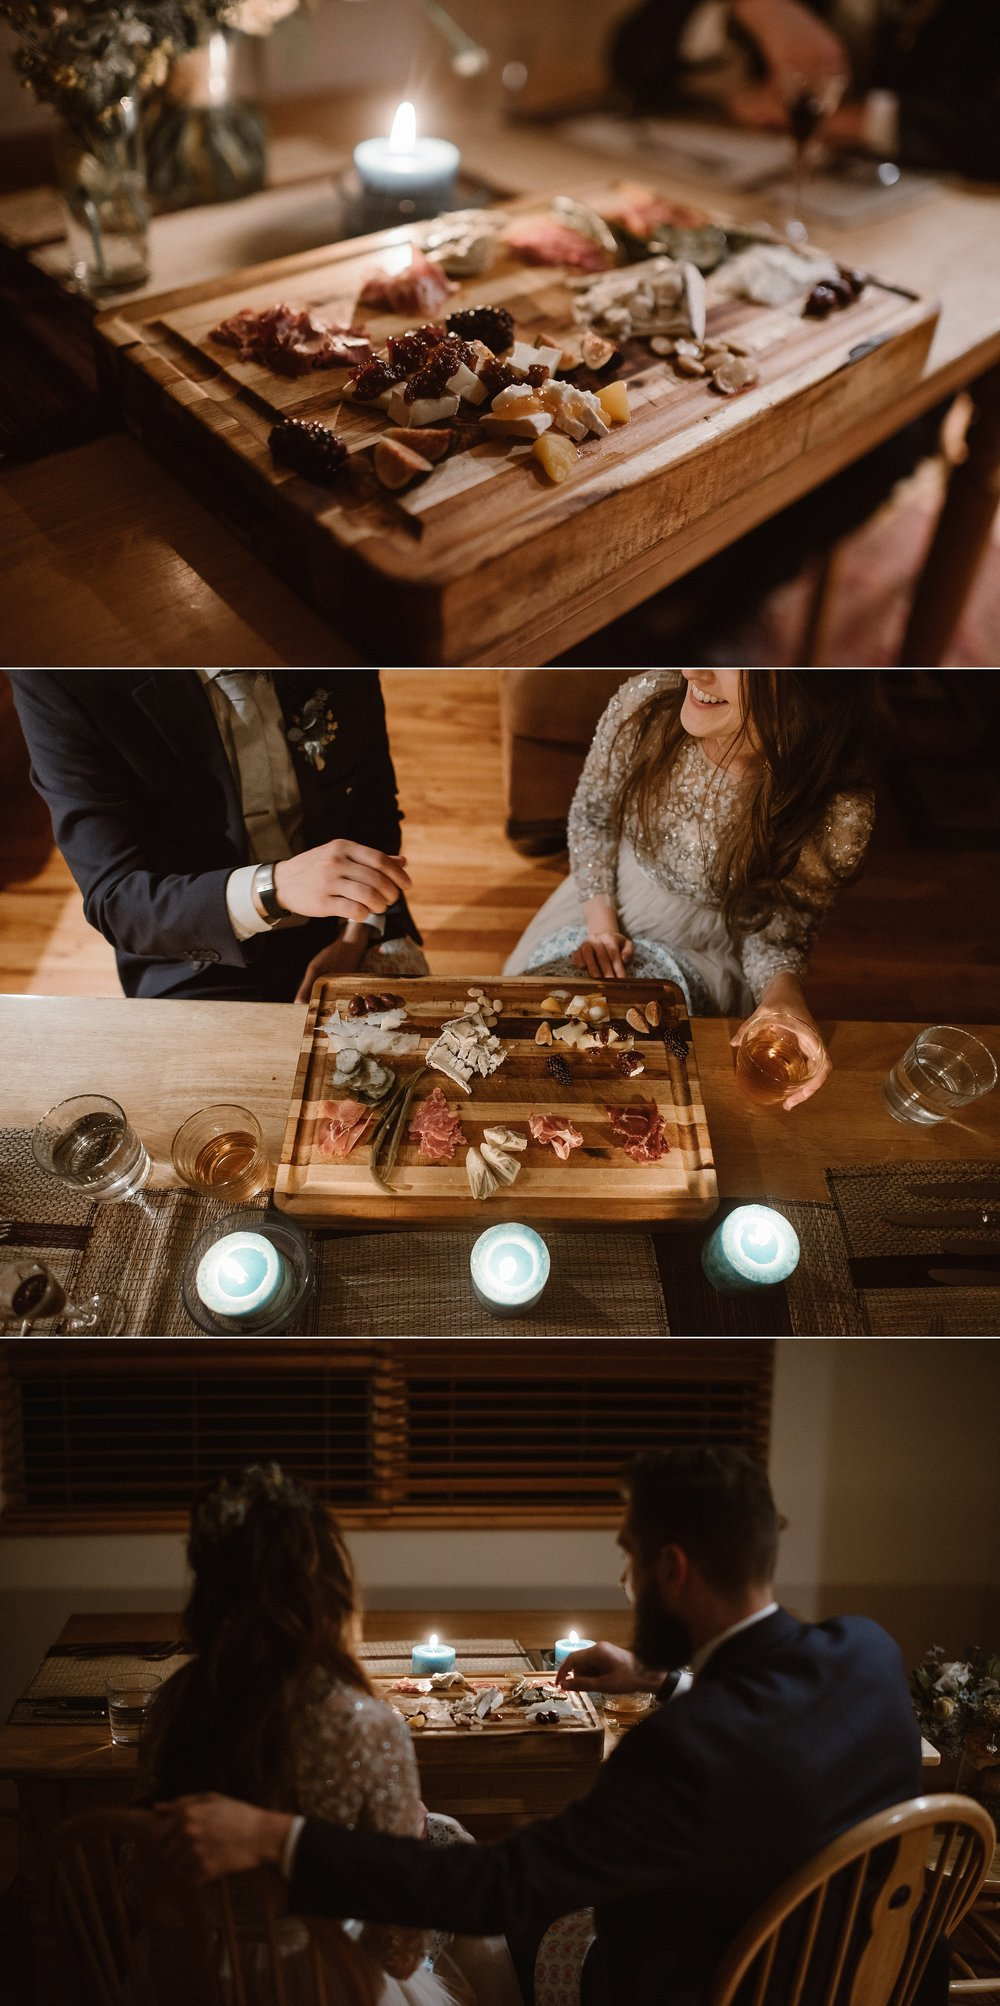 Jen and Dan's private elopement allowed them to focus on what was most important to them - adventure and food! After an epic hike through Yankee Boy Basin to say their vows in private they moseyed back to their cabin for an intimate meal prepared for them by a private chef. Photos of this all day adventure by traveling elopement photographer Maddie Mae.